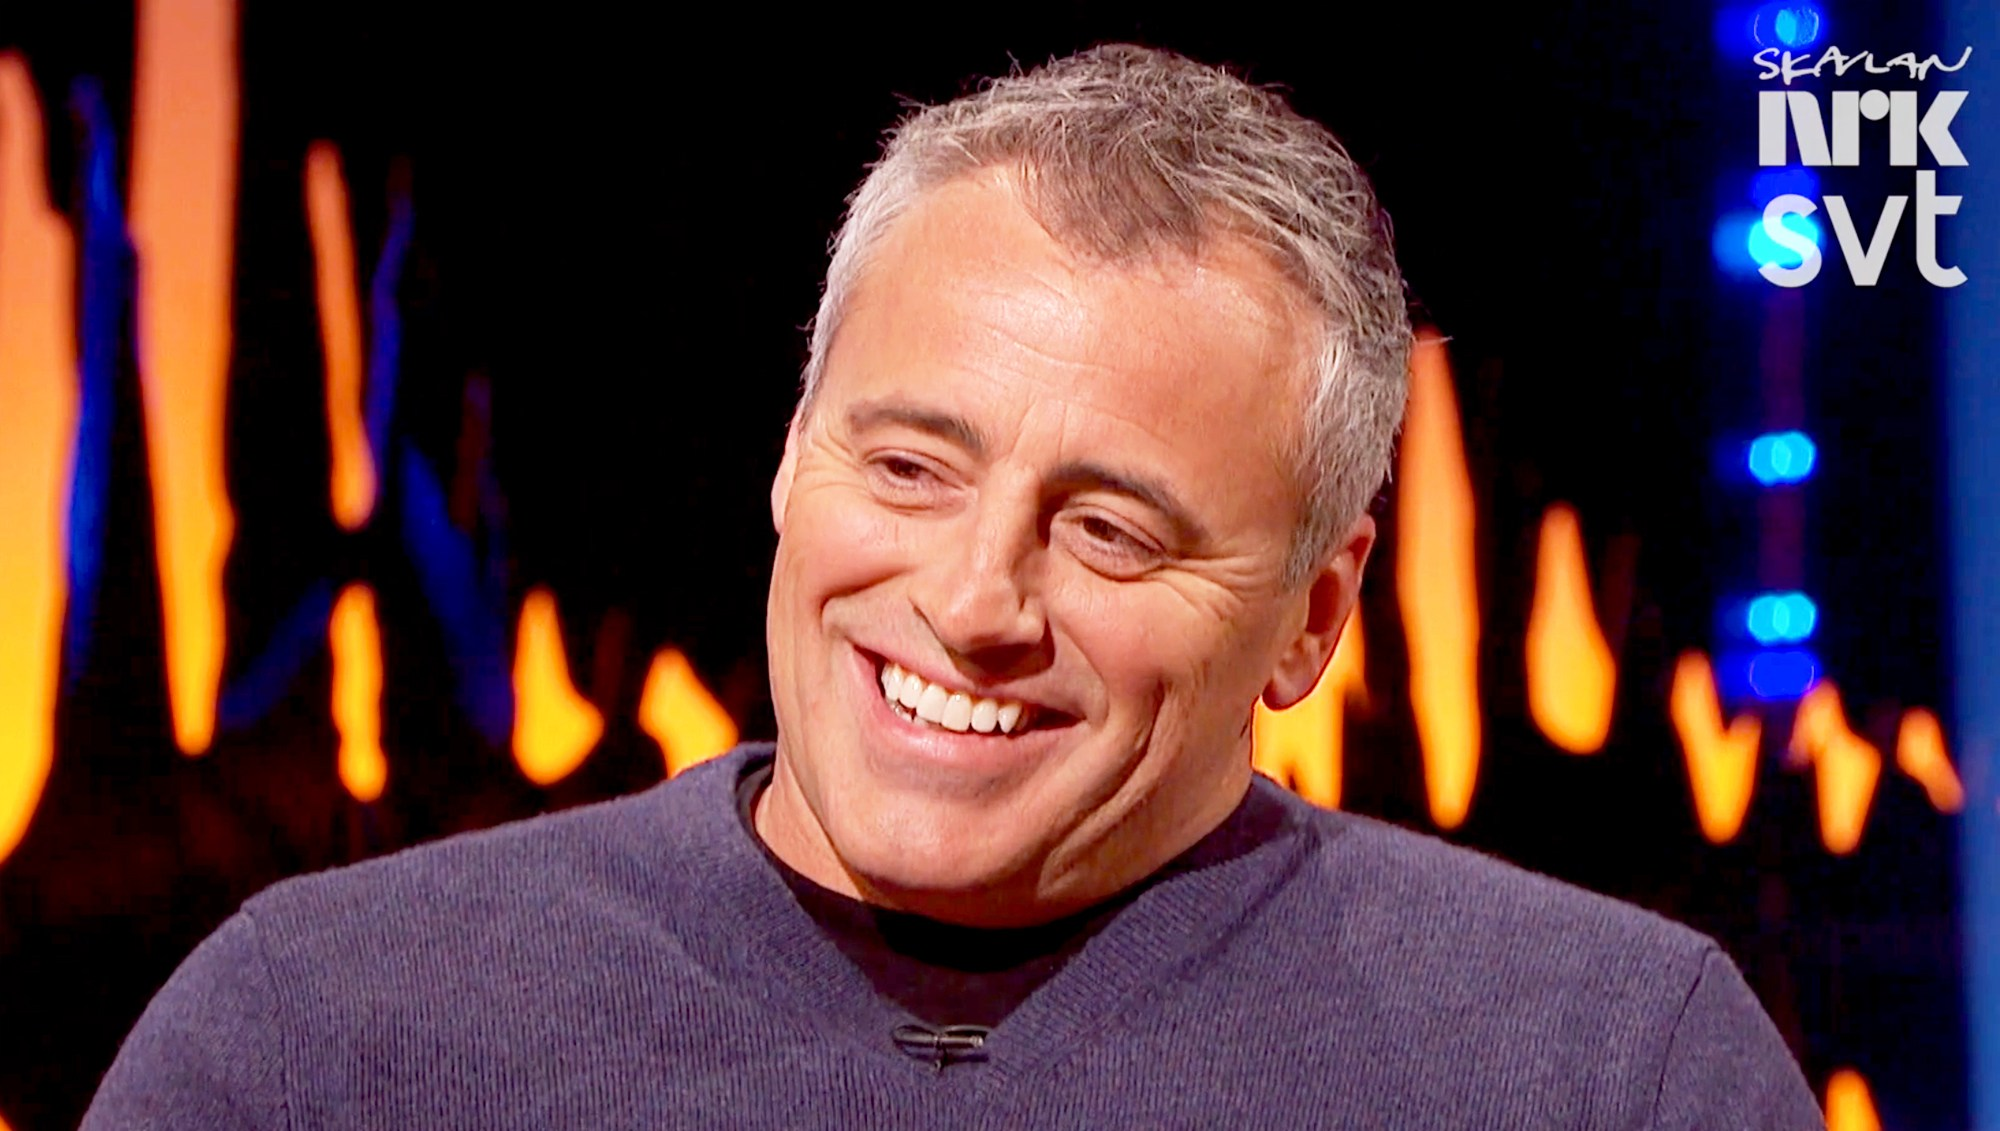 'Friends' star Matt LeBlanc